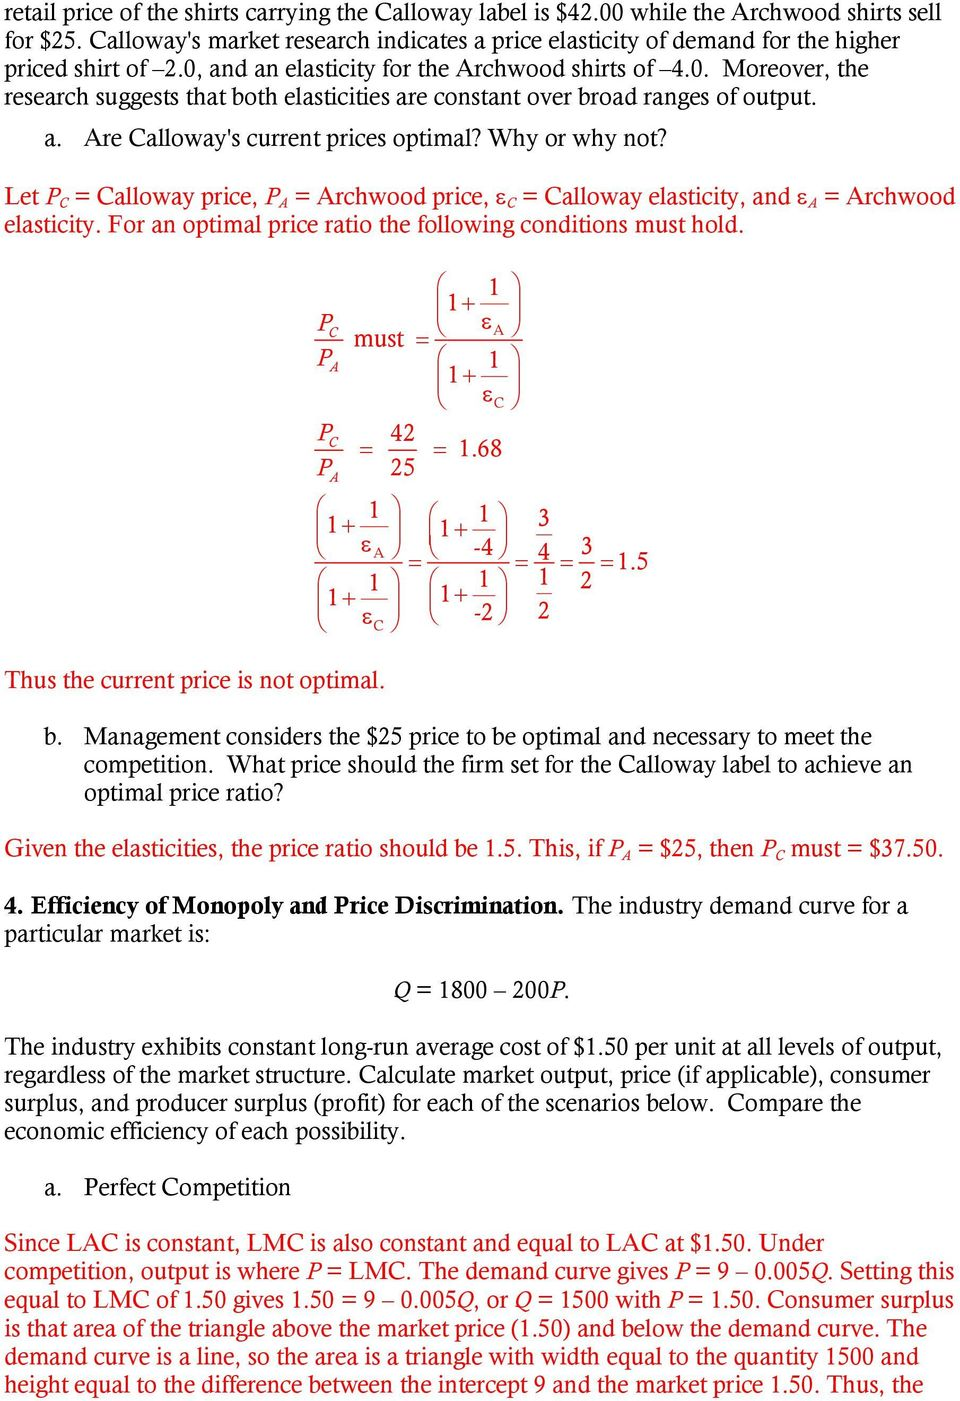 a. Are Calloway's current prices optimal? Why or why not? Let P C = Calloway price, P A = Archwood price, ε C = Calloway elasticity, and ε A = Archwood elasticity.